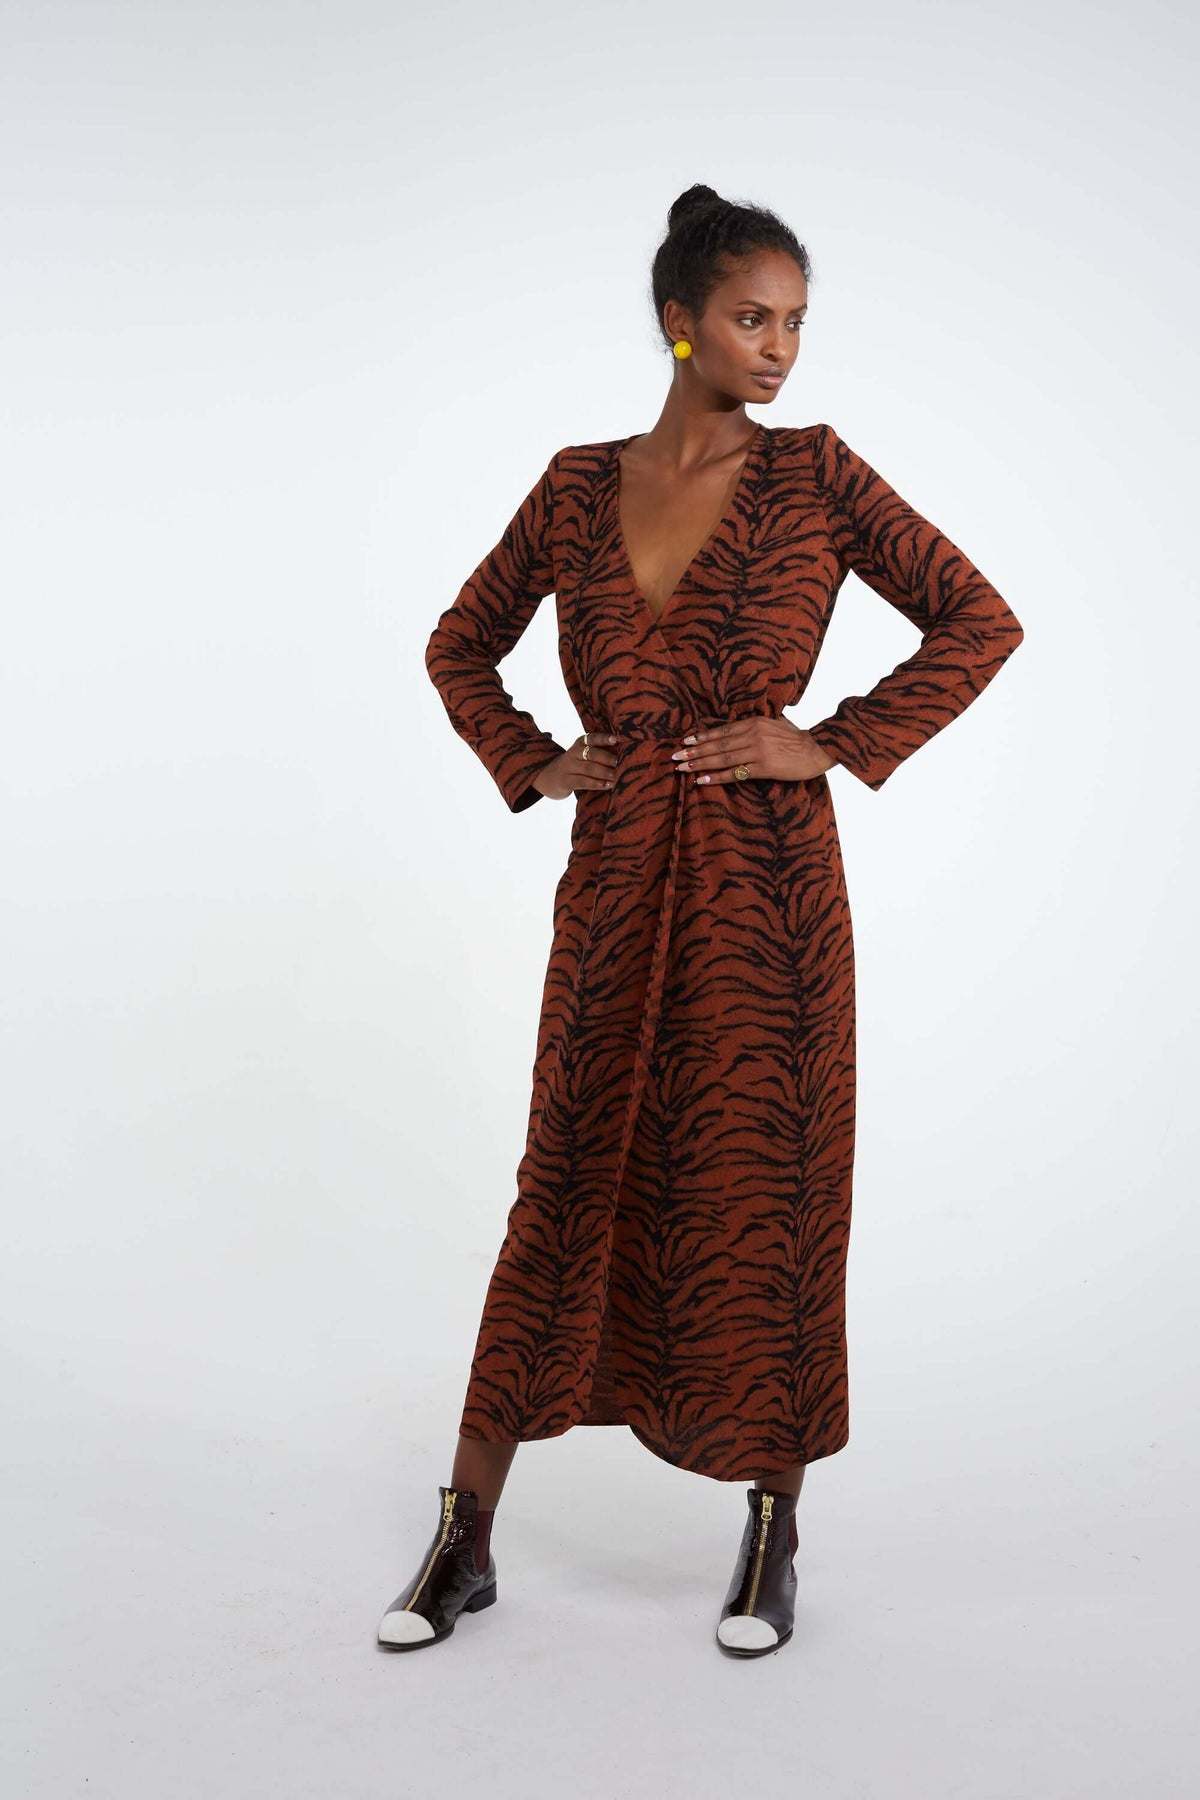 Austria dress in tiger print